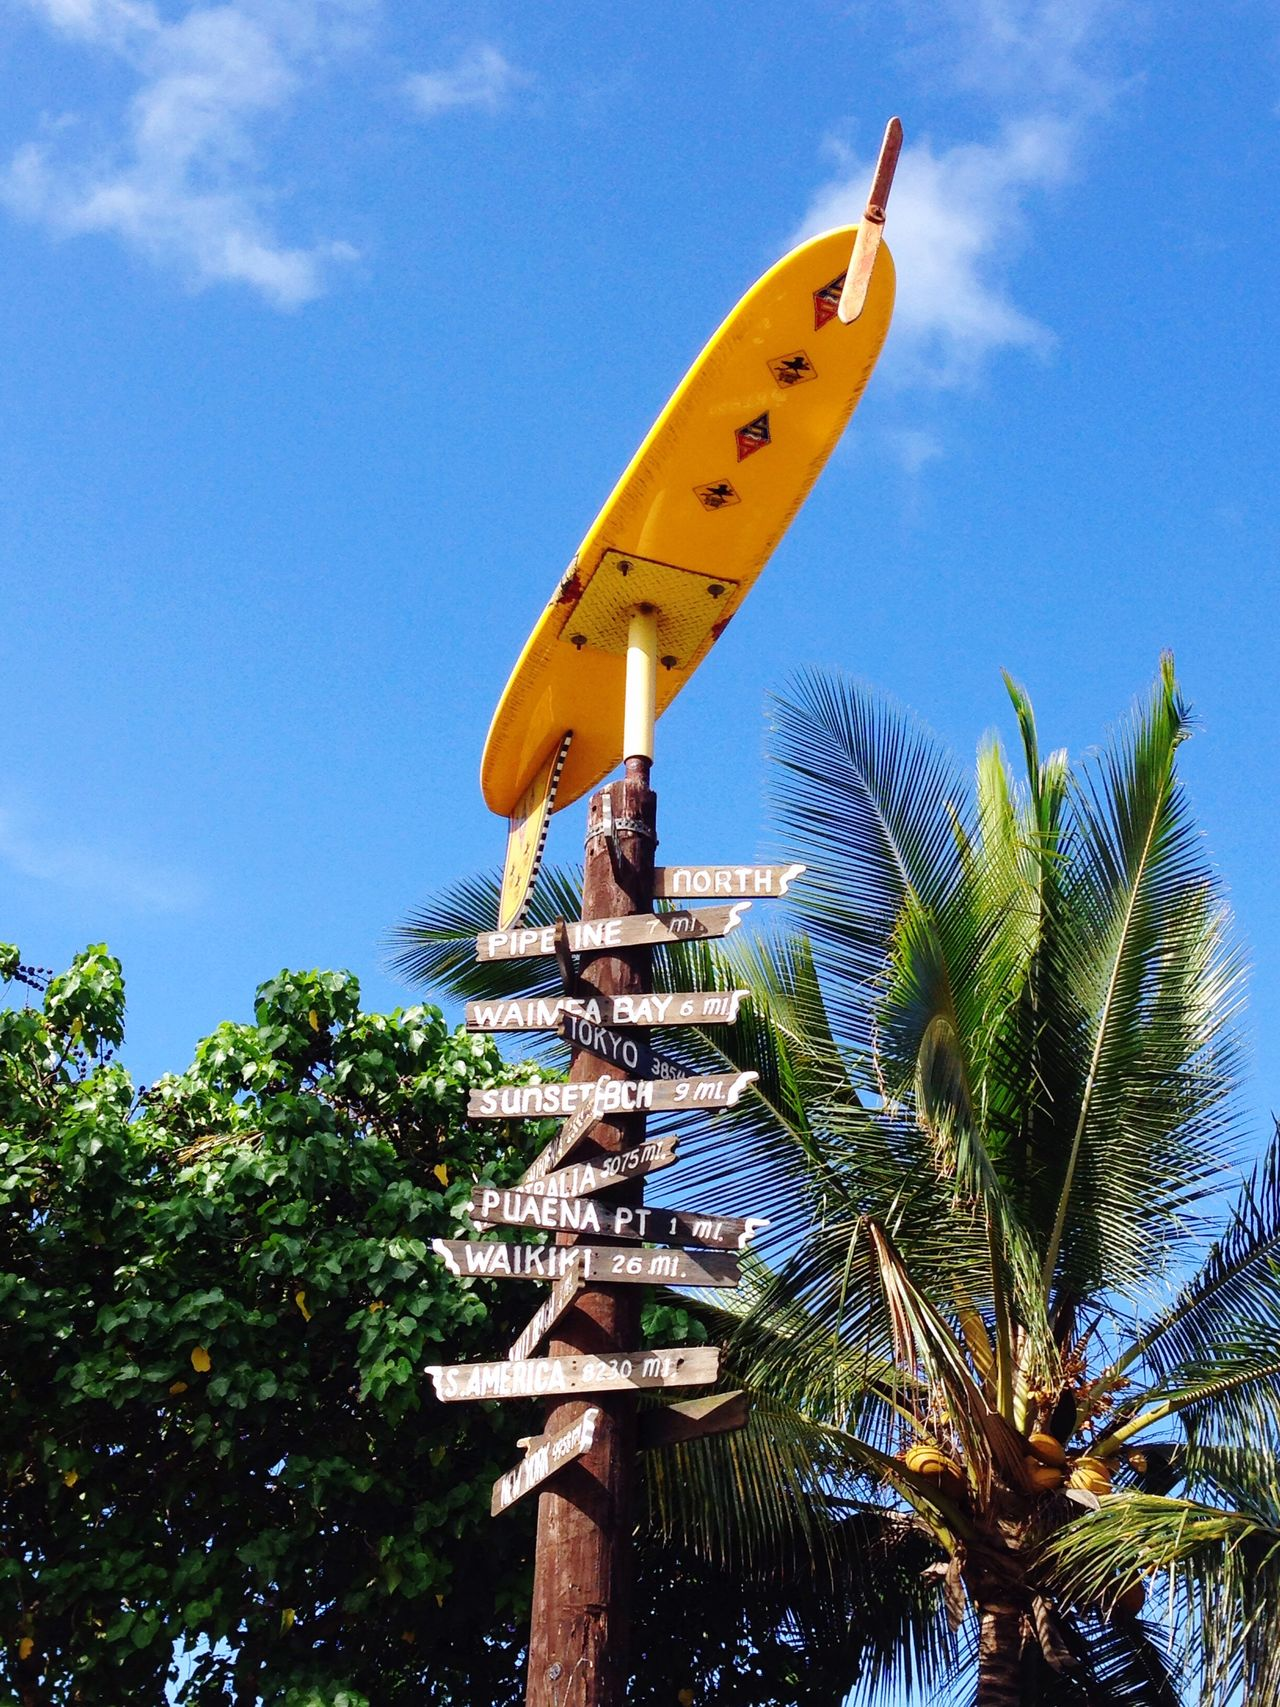 North Shore Signs, Hawaii Board Sign Signs Surf North Shore Hawaii Blue Low Angle View Outdoors No People Paths Day Ways Routes